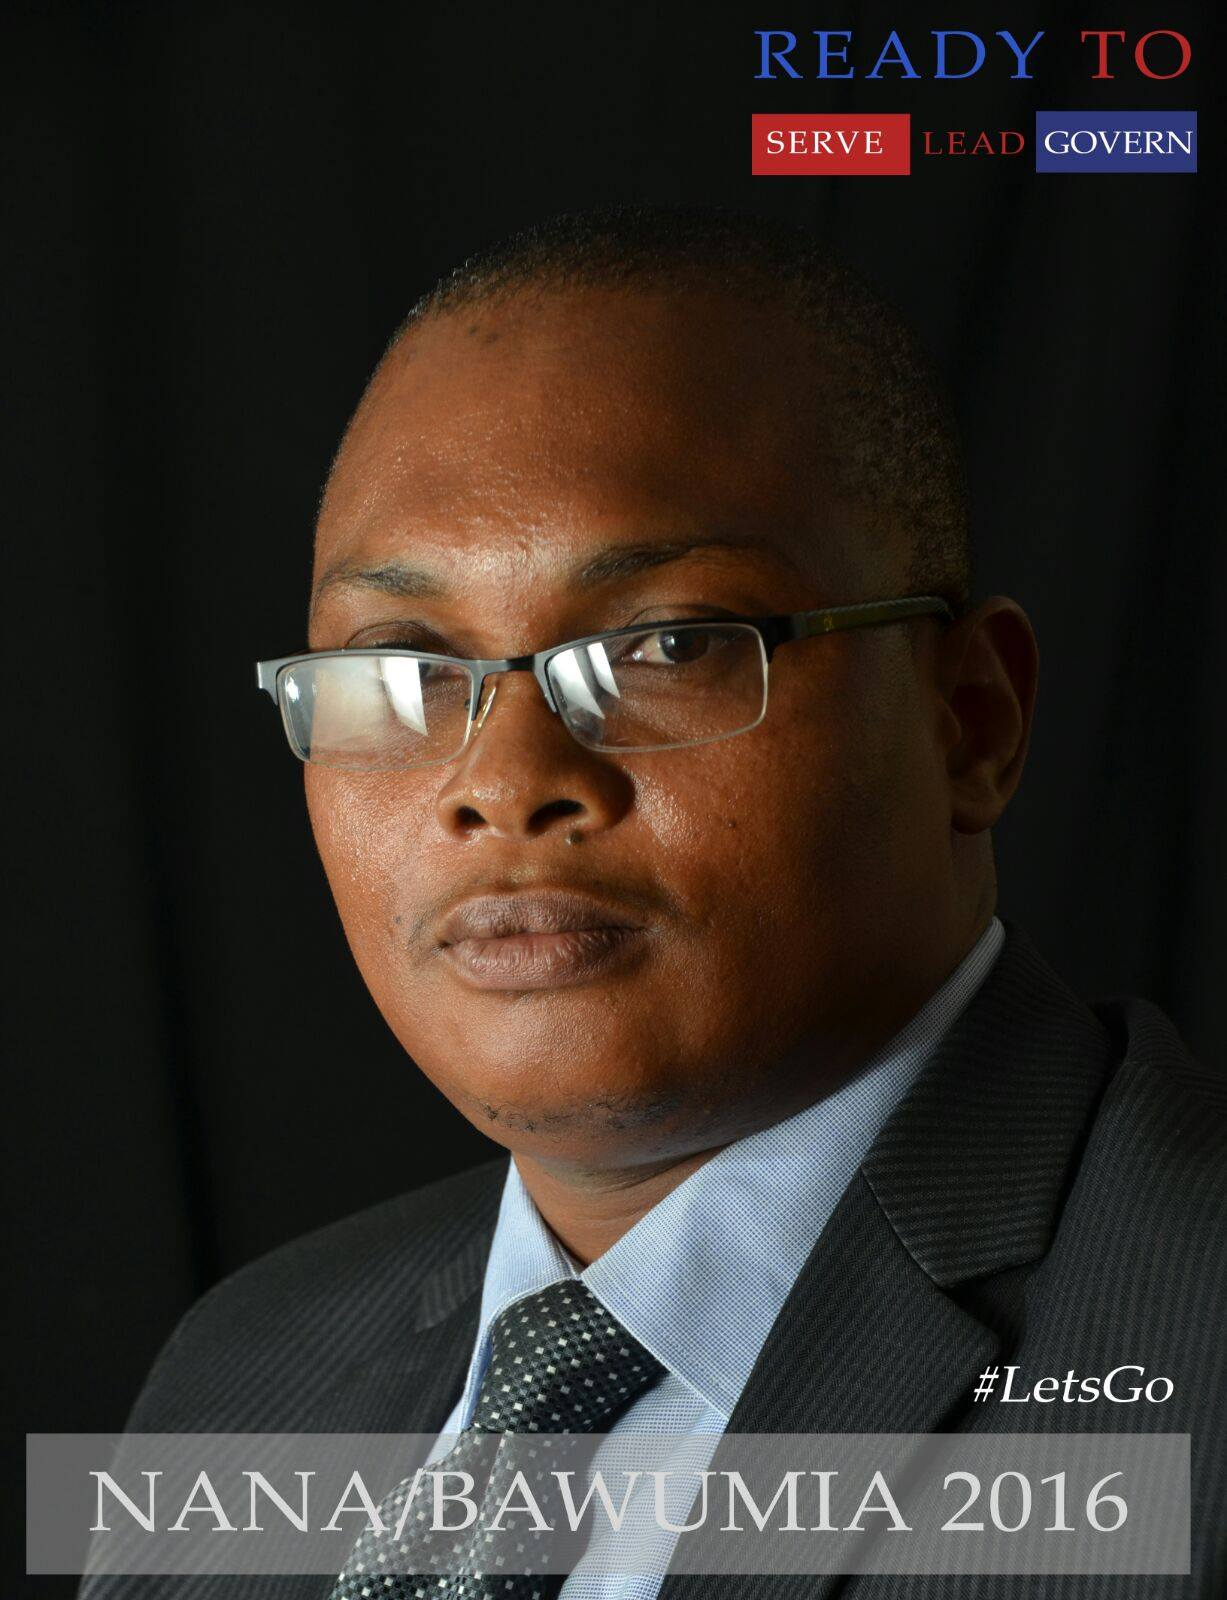 A Facebook profile photo of Evron, a ocial media commentator Evron Hughes is accused of defaming Ghana's Deputy Attorney General.